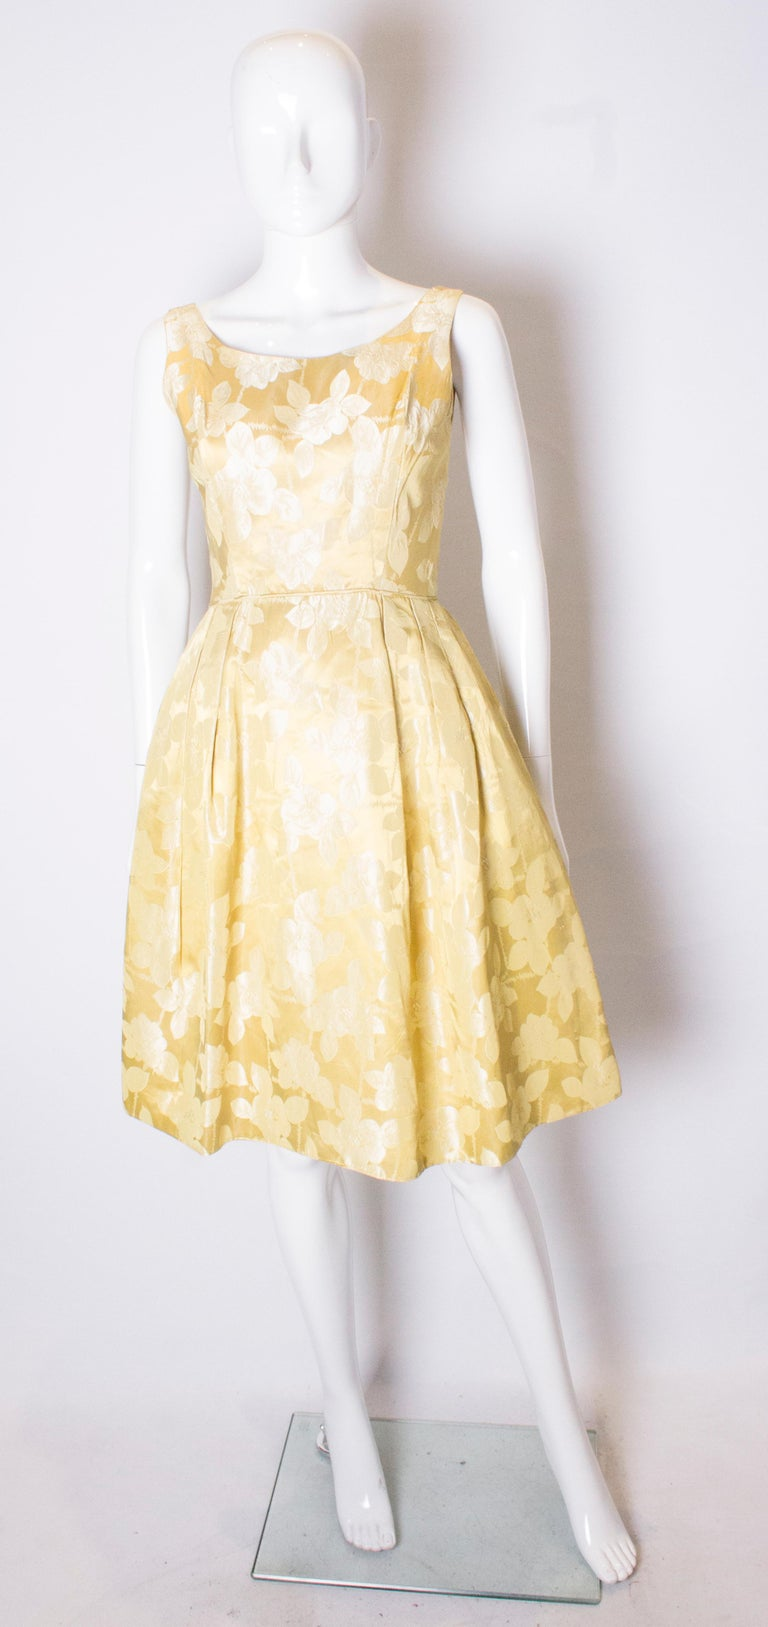 A chic vintage cocktail dress in a pretty yellow/gold colour . The dress has a scoop neckline, front and back with small gathering at the waist. It is fully lined with a central back zip and an net underskirt.